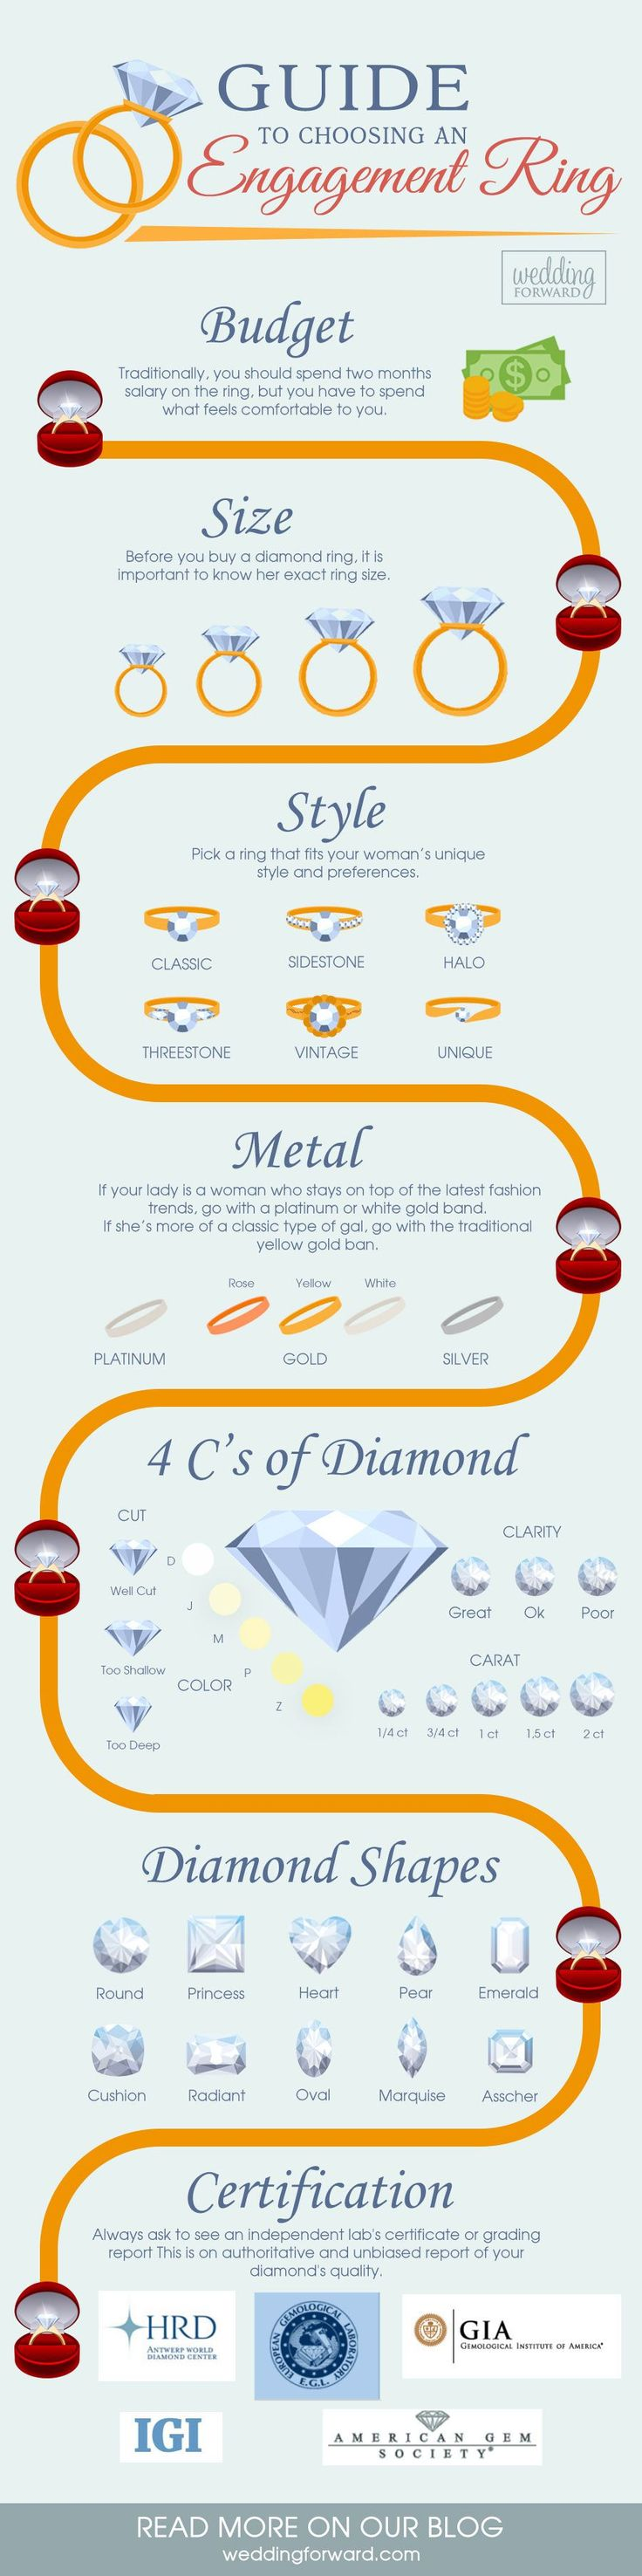 Best 25 Wedding ring guide ideas on Pinterest